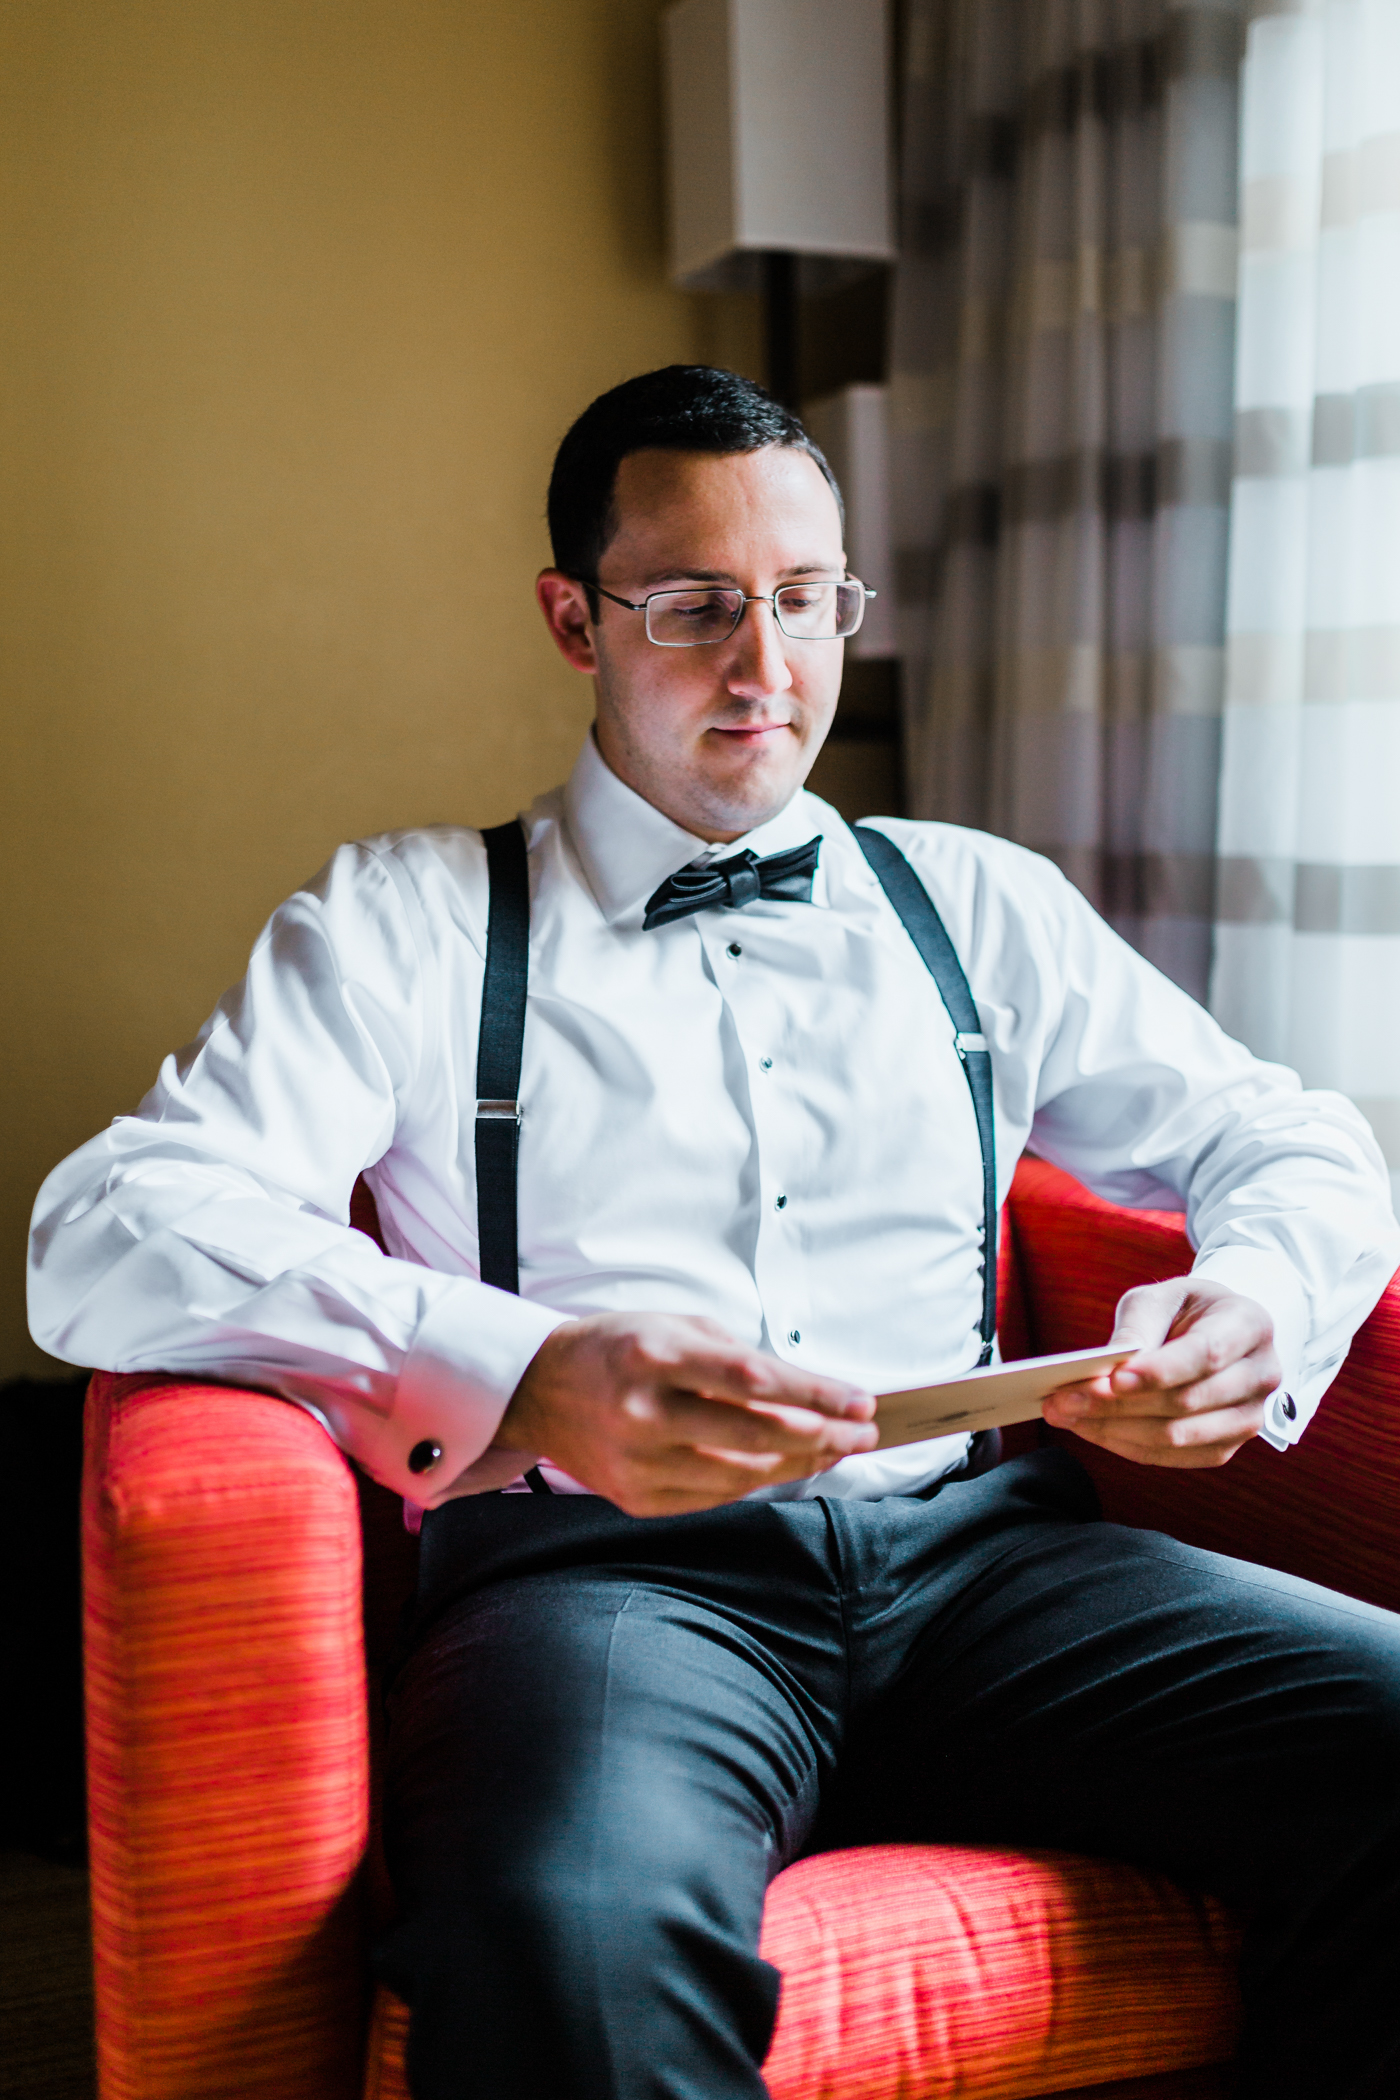 groom reading his letter to his bride - hotels in Frederick MD - maryland wedding photo and video